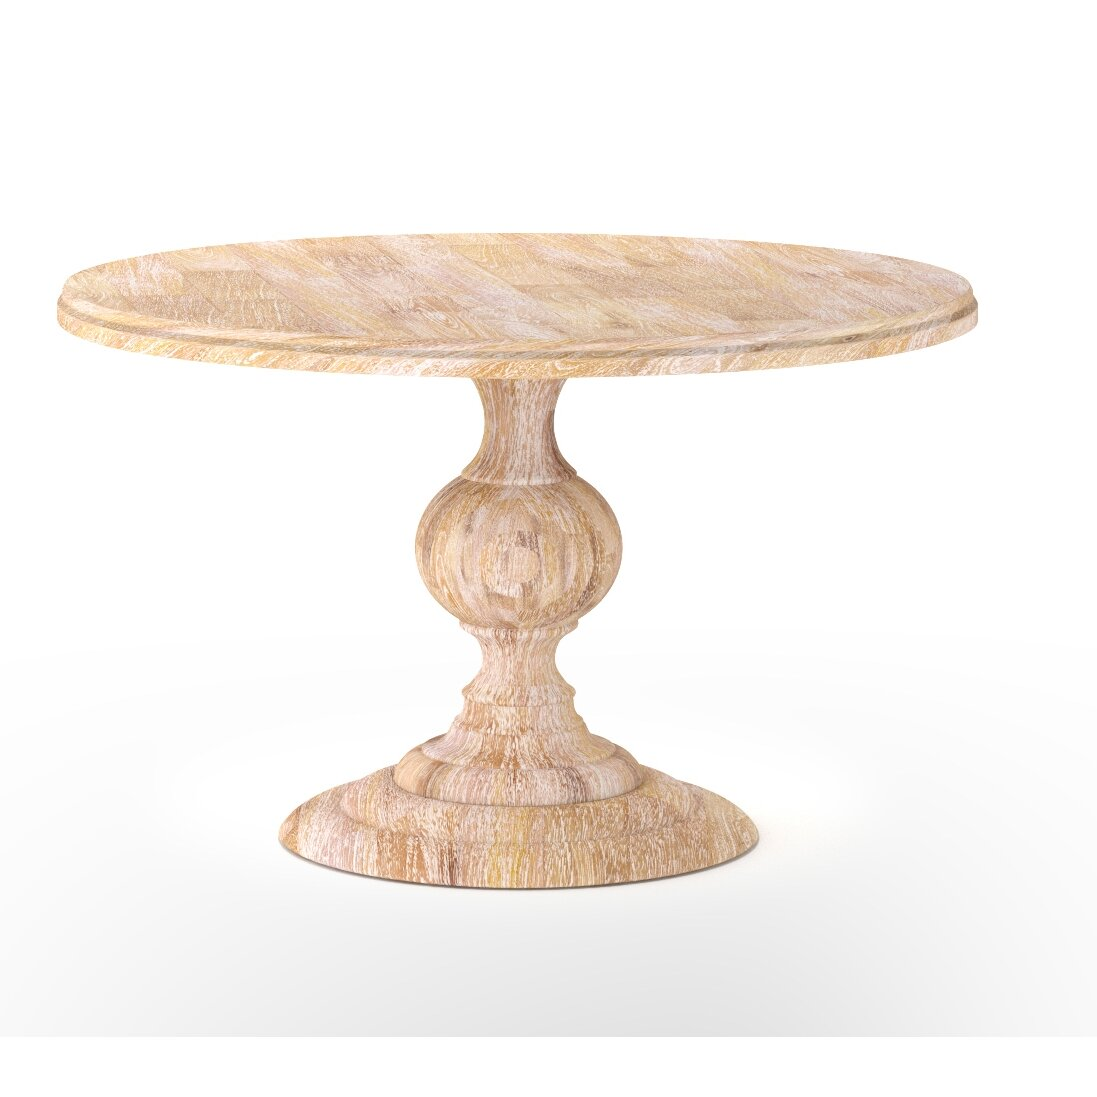 Design Tree Home Magnolia Round Dining Table Wayfairca : Design Tree Home Magnolia Round Dining Table from www.wayfair.ca size 1097 x 1097 jpeg 138kB